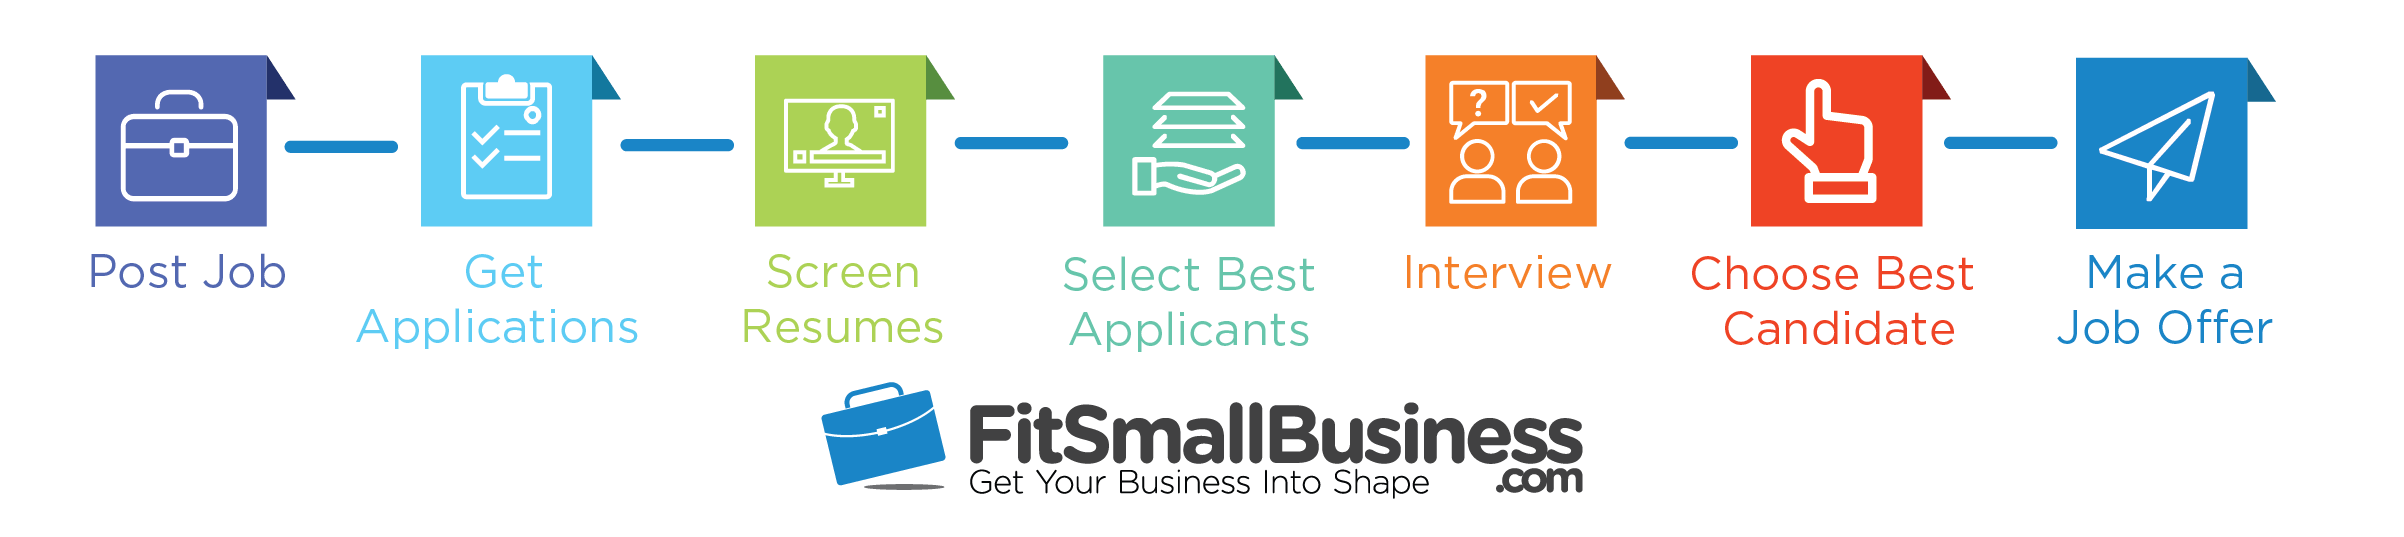 Resume Screening Fit Small Business Hiring Process Flow